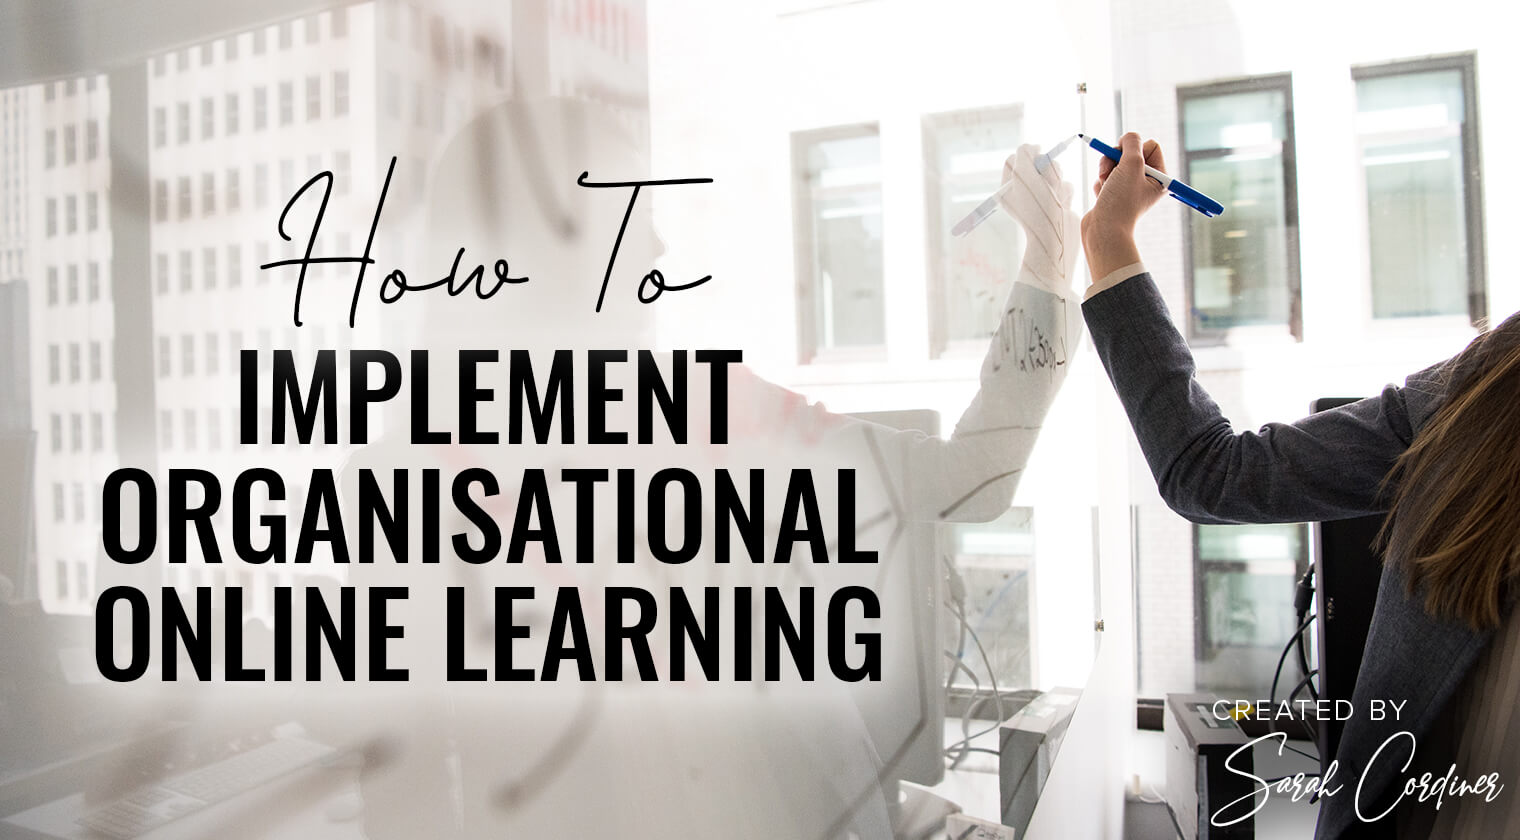 Implement Organisational Online Learning